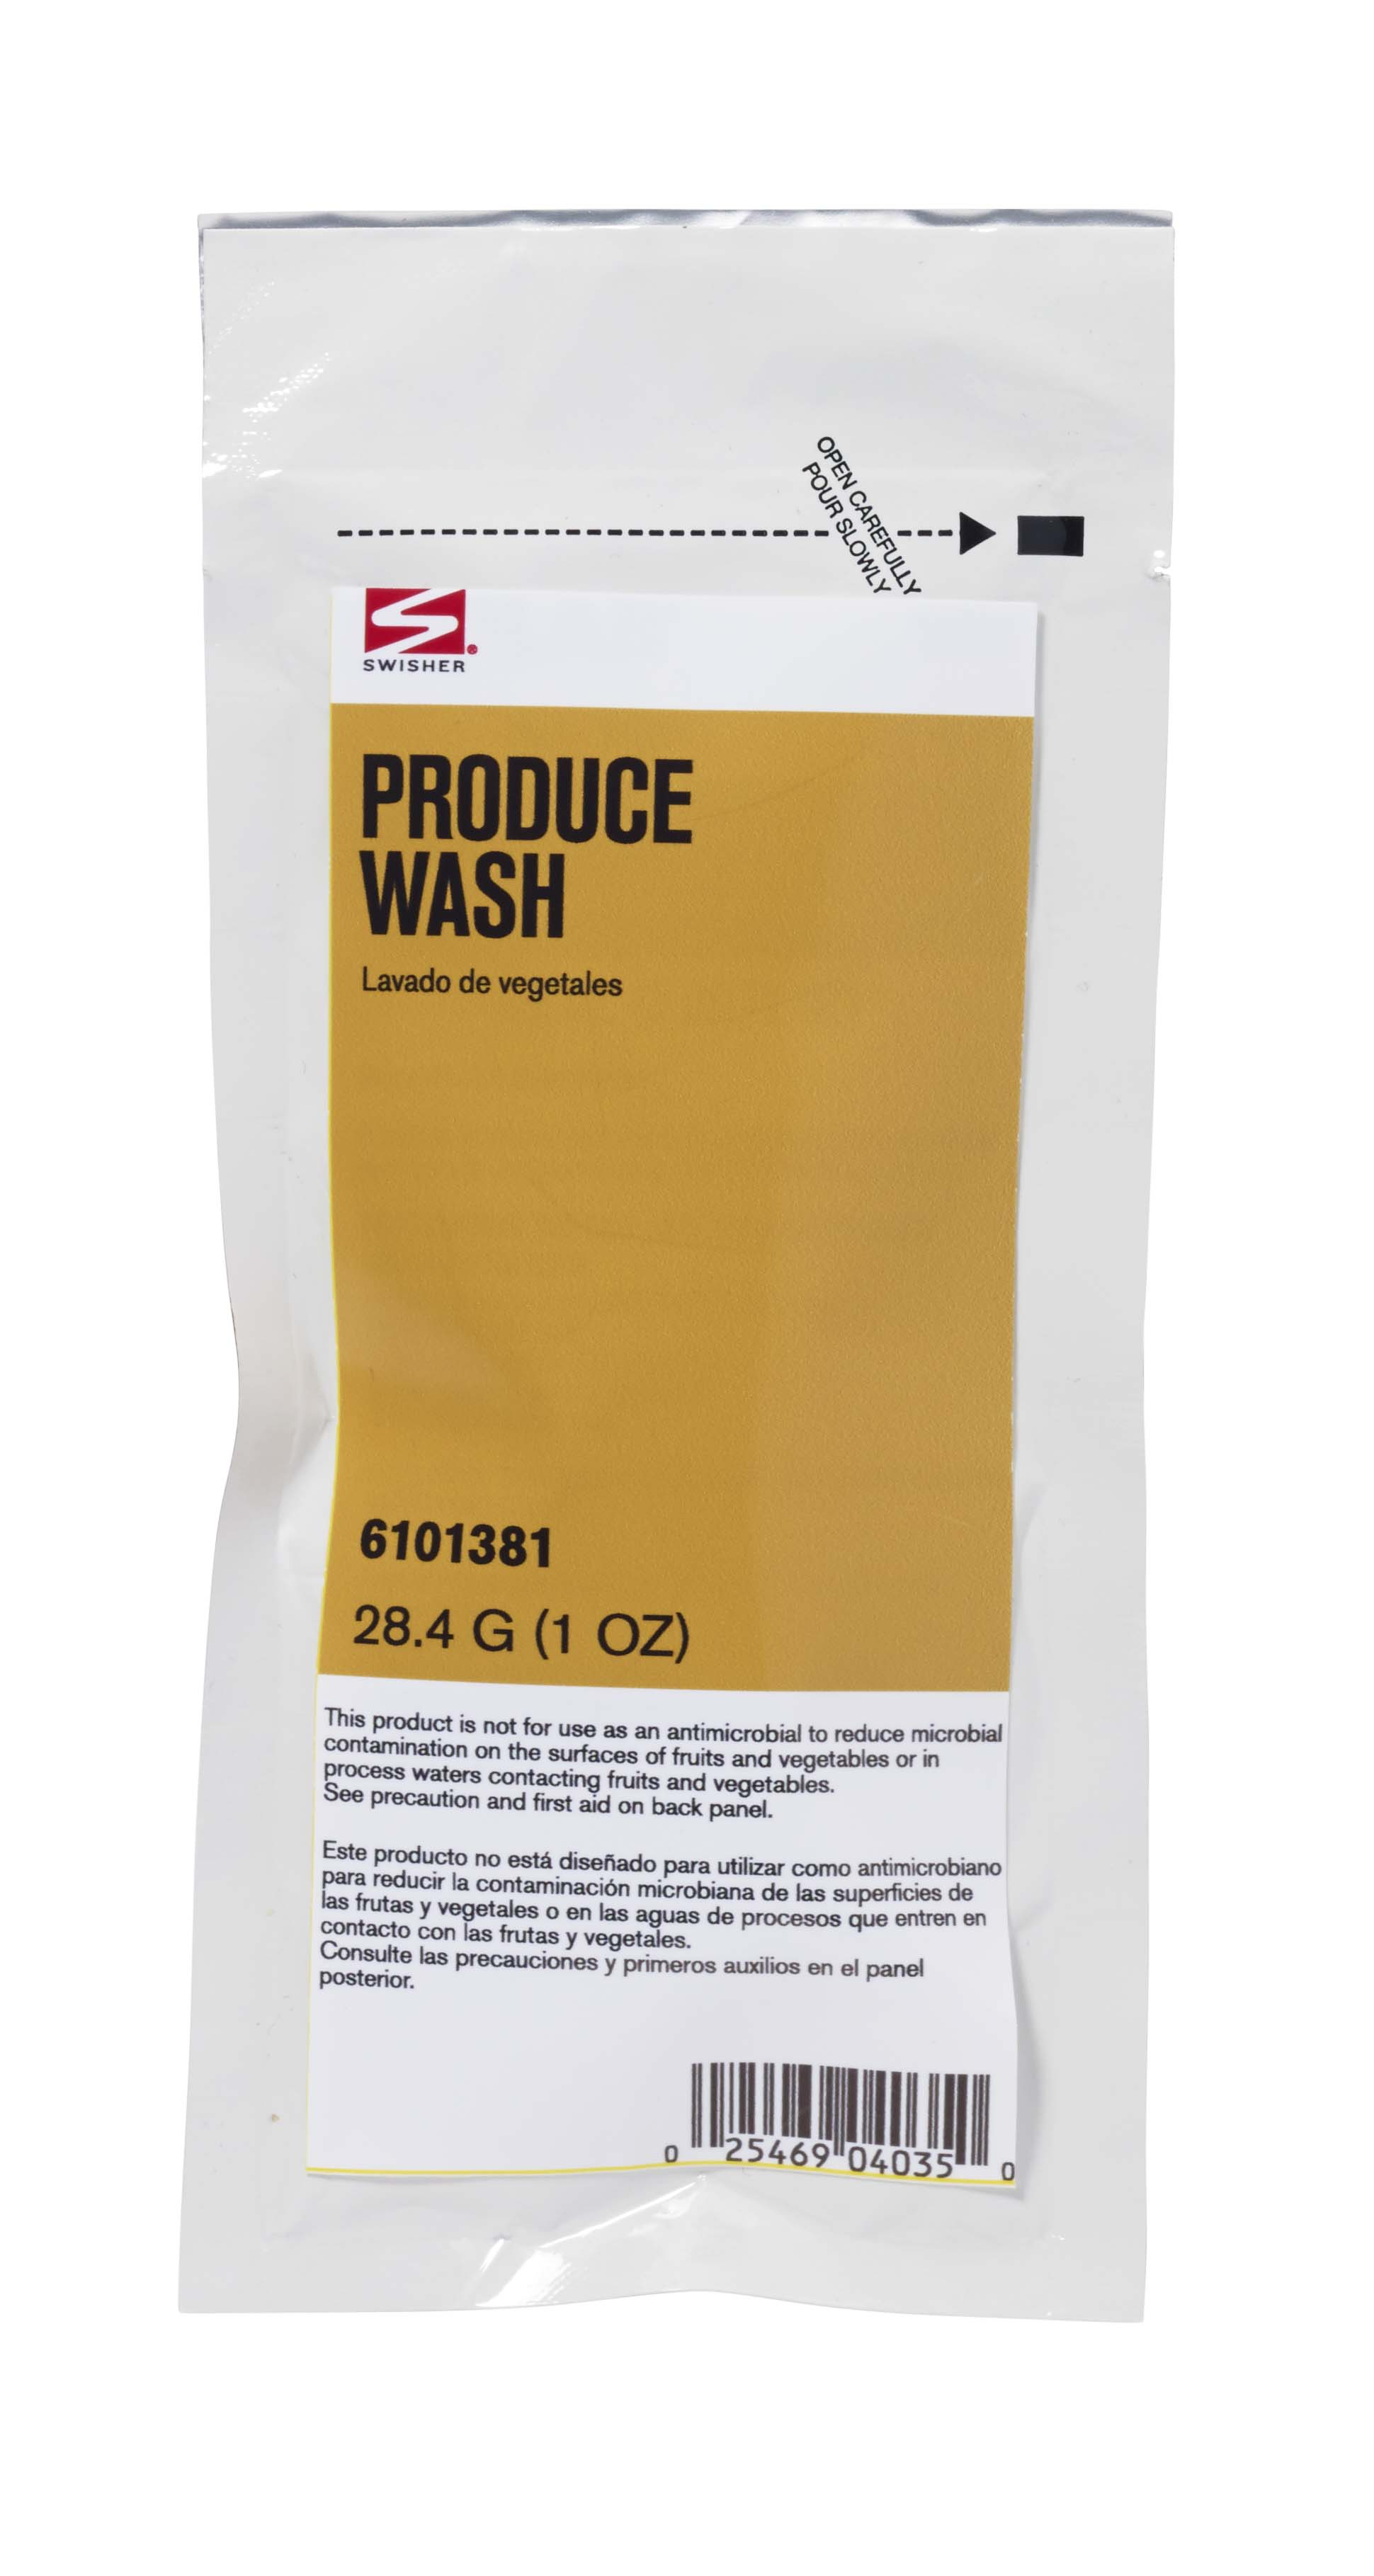 Swisher Produce Wash